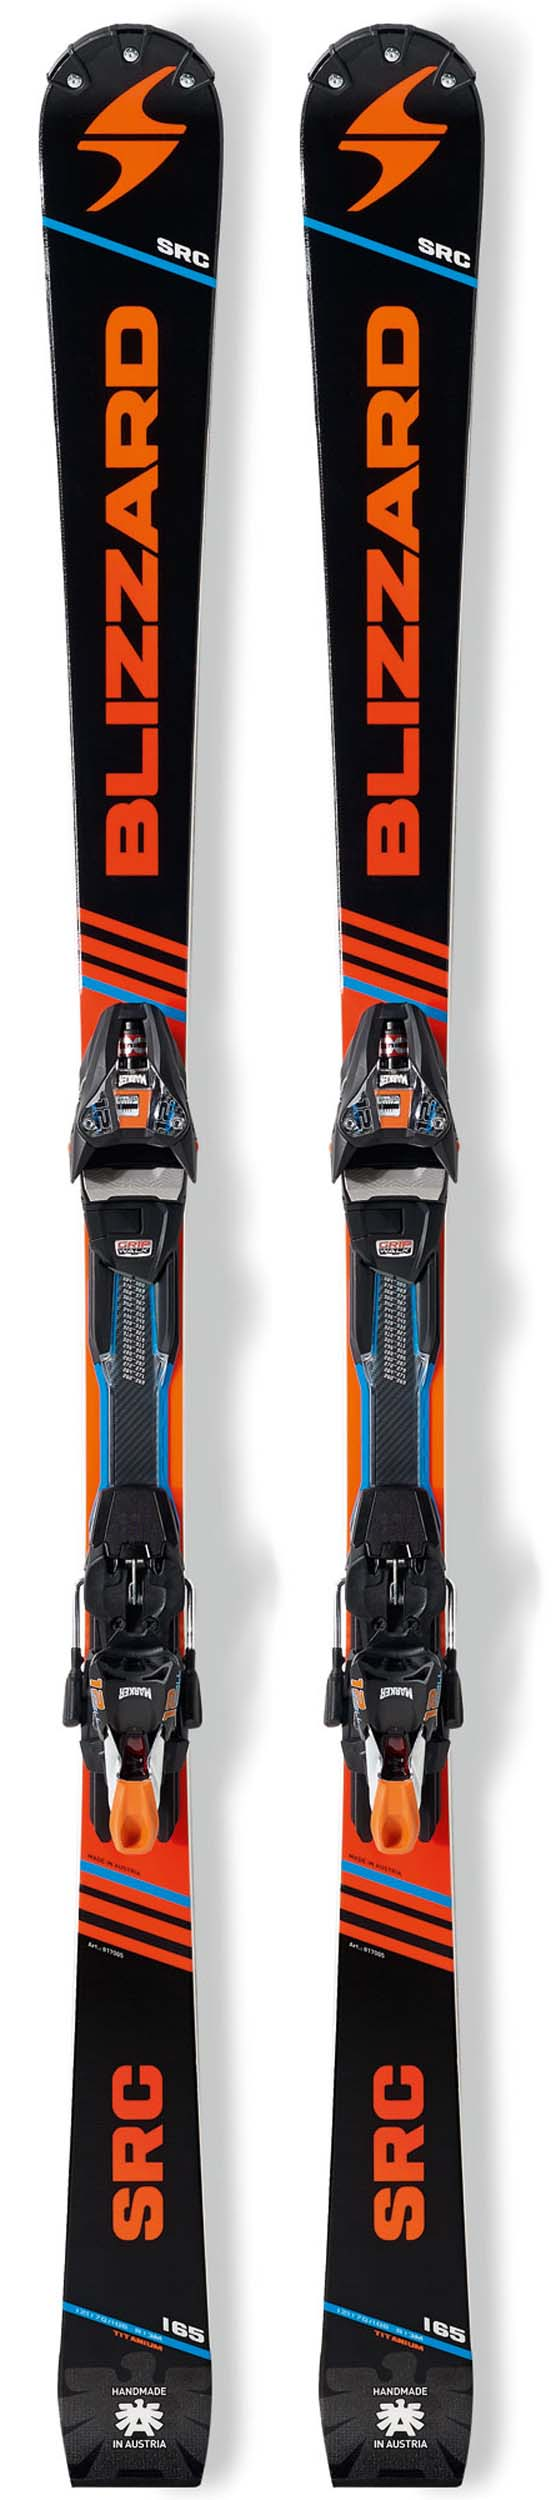 Blizzard 2018 SRC Racing Skis w/Xcell 12 Bindings NEW !! 170cm